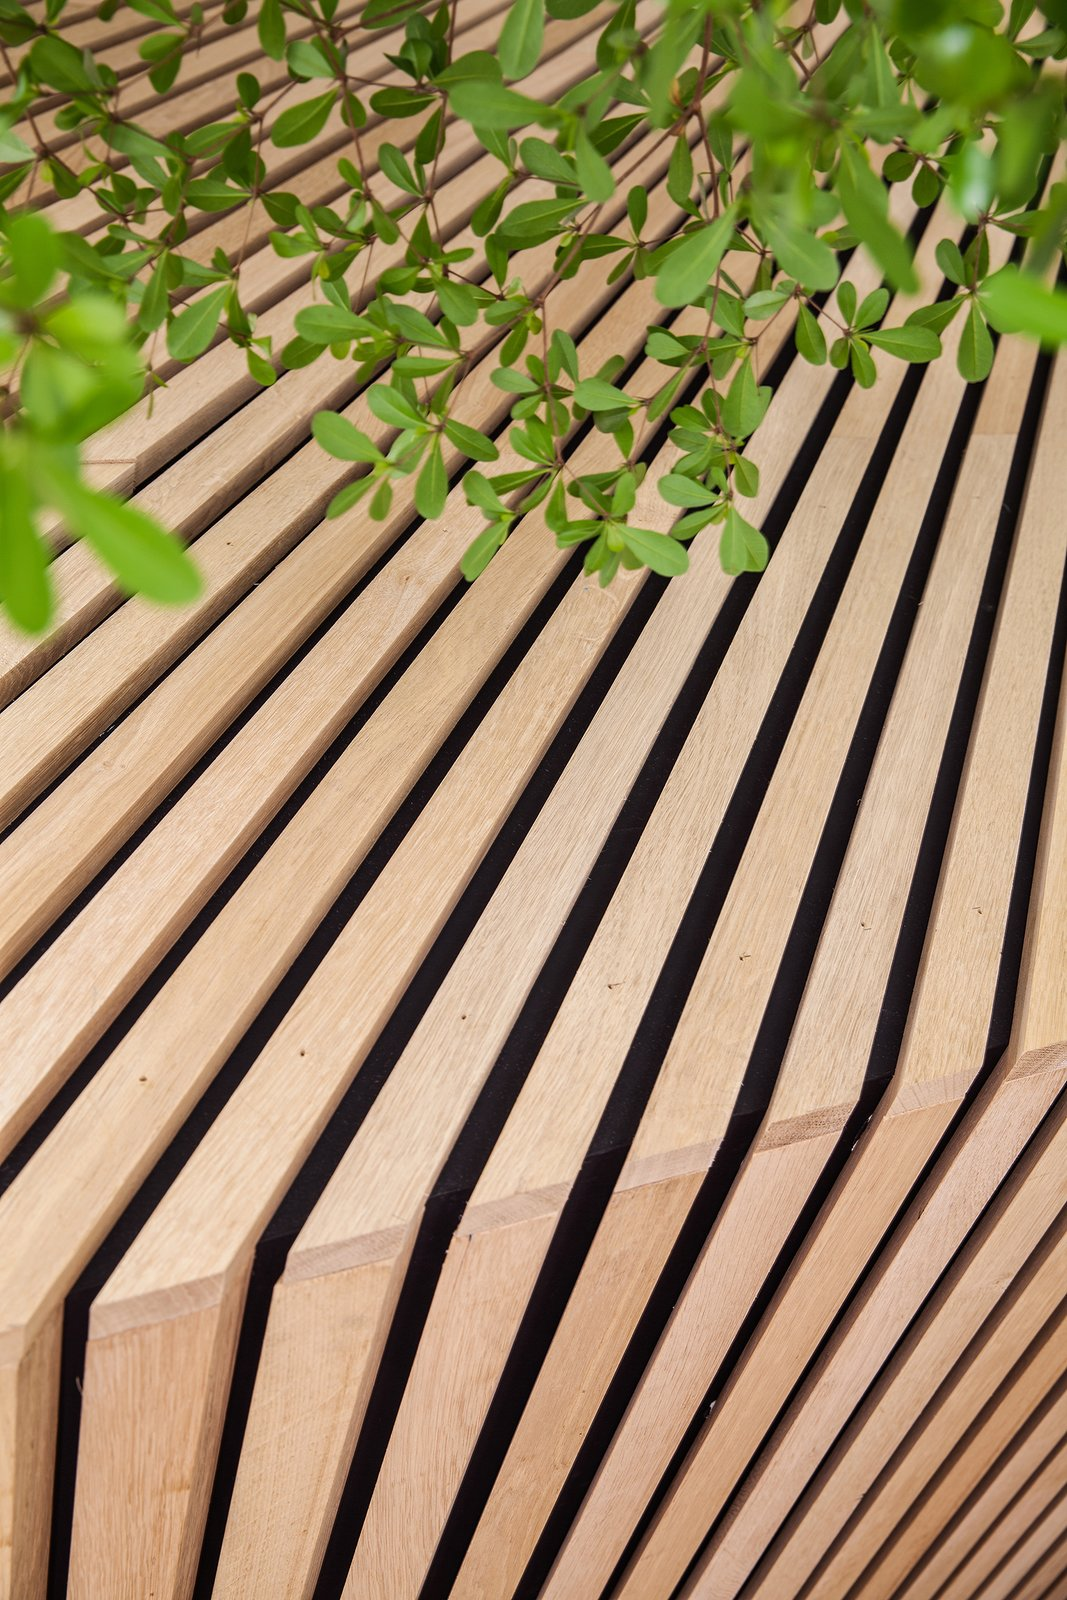 A close-up of the wood detailing. Photo by Wouter van der Sar.  Photo 5 of 7 in A Tree Grows in Amsterdam